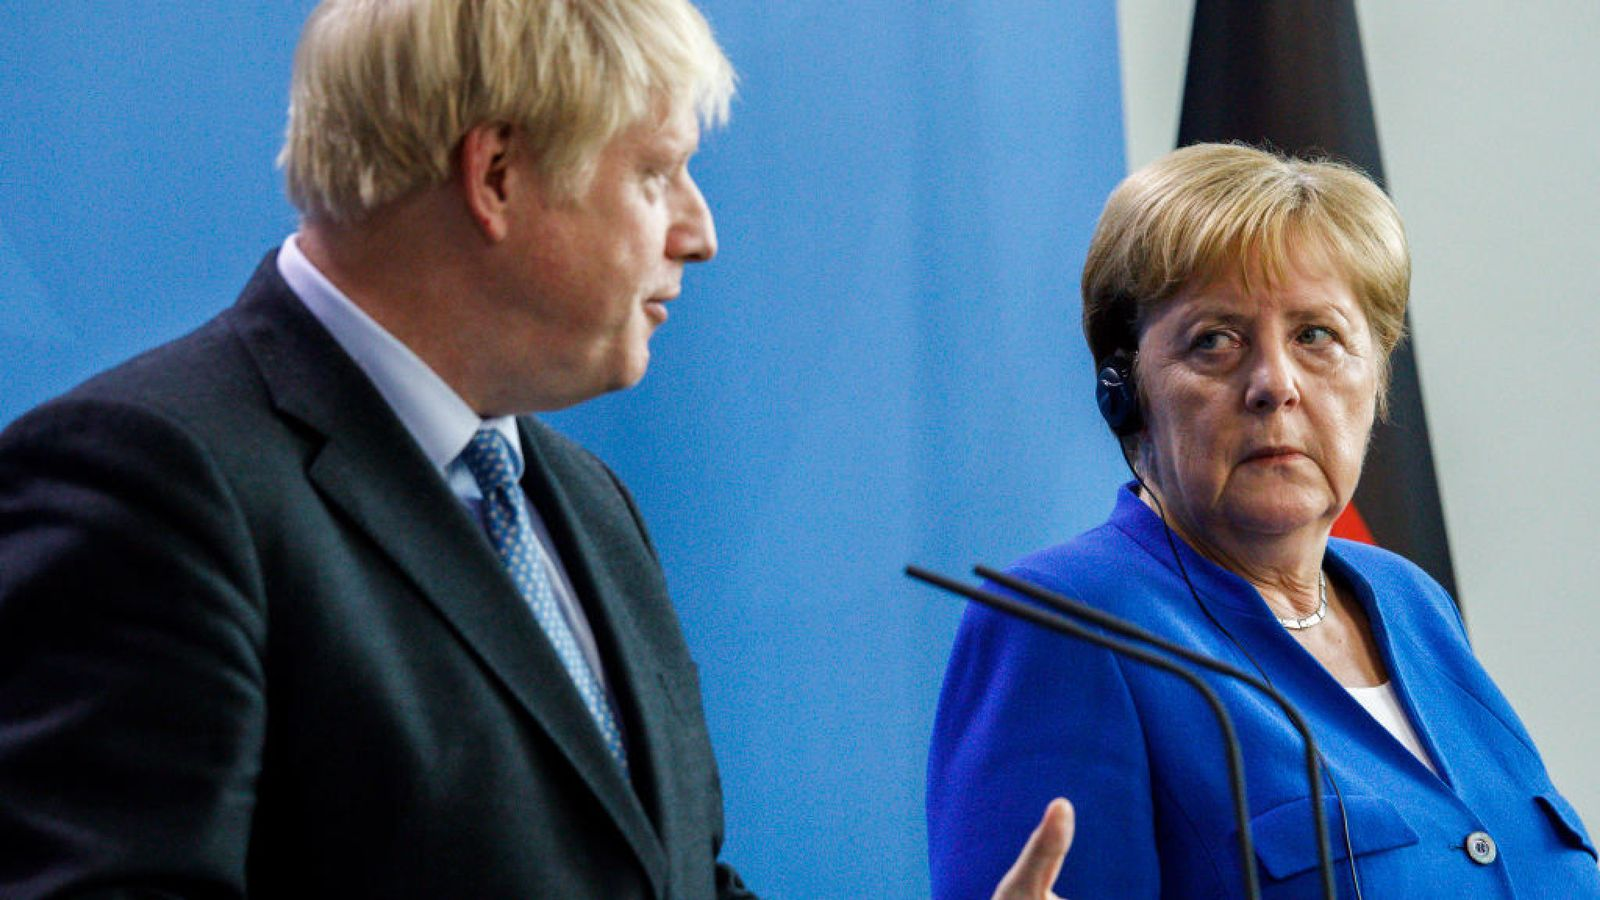 skynews-boris-johnson-angela-merkel_4751894.jpg